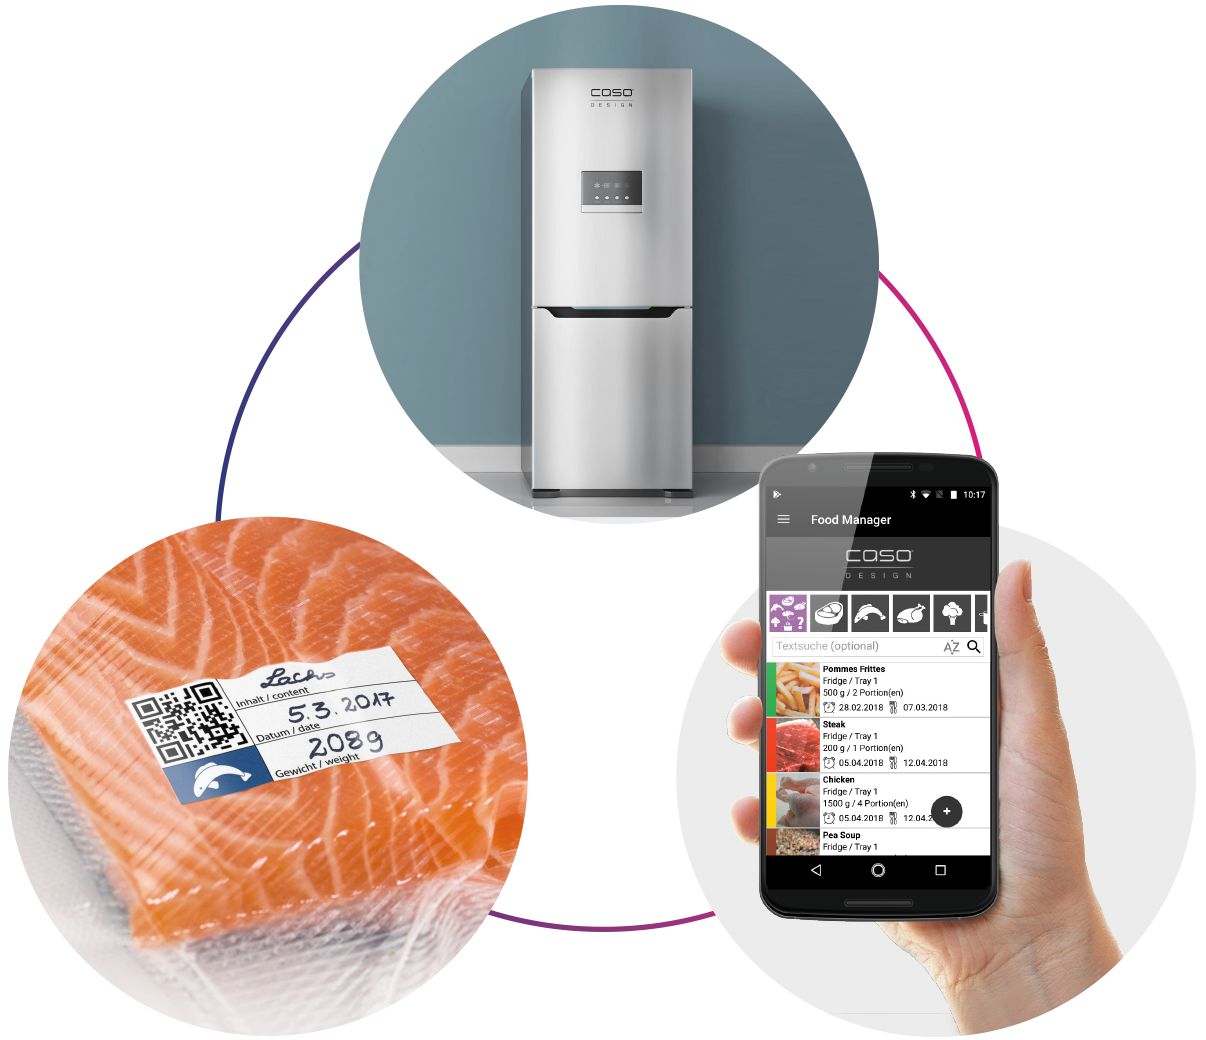 CASO Food Manager App